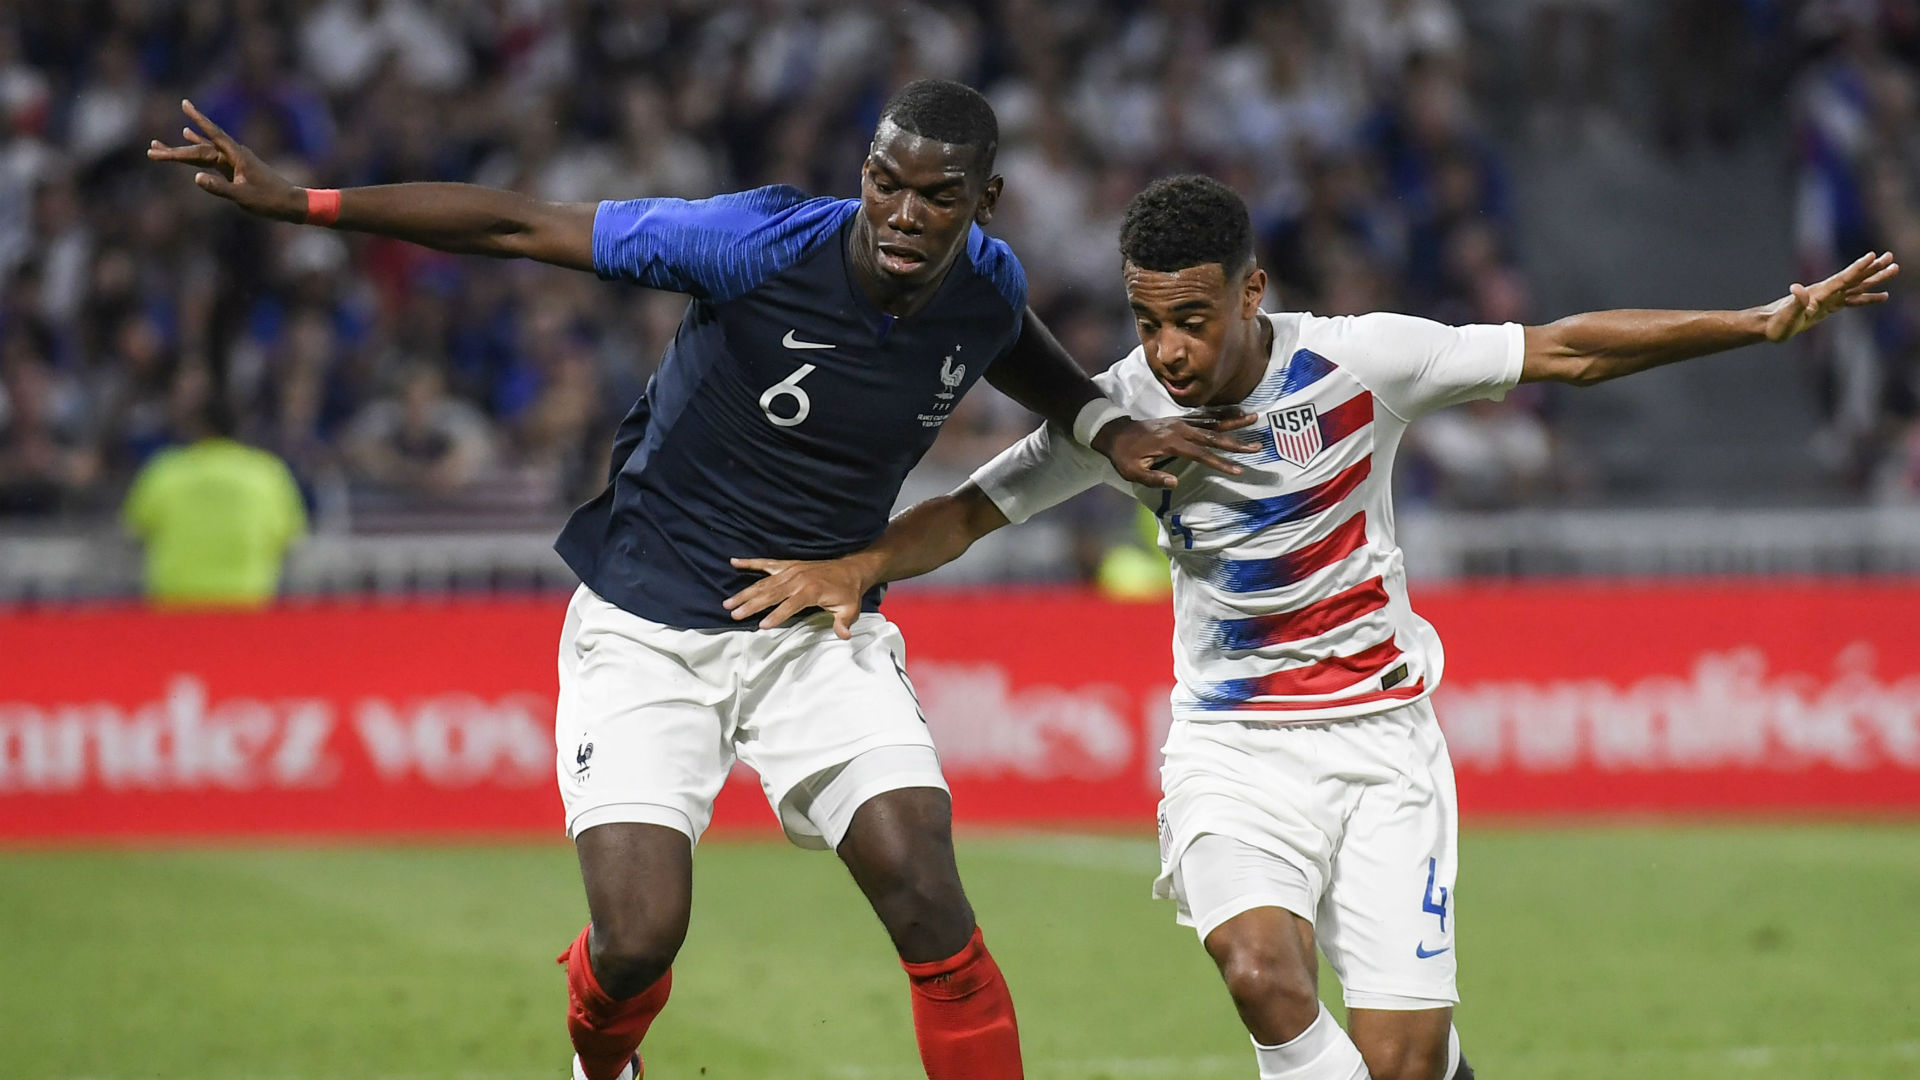 France lacked 'juice' against United States of America, says Deschamps